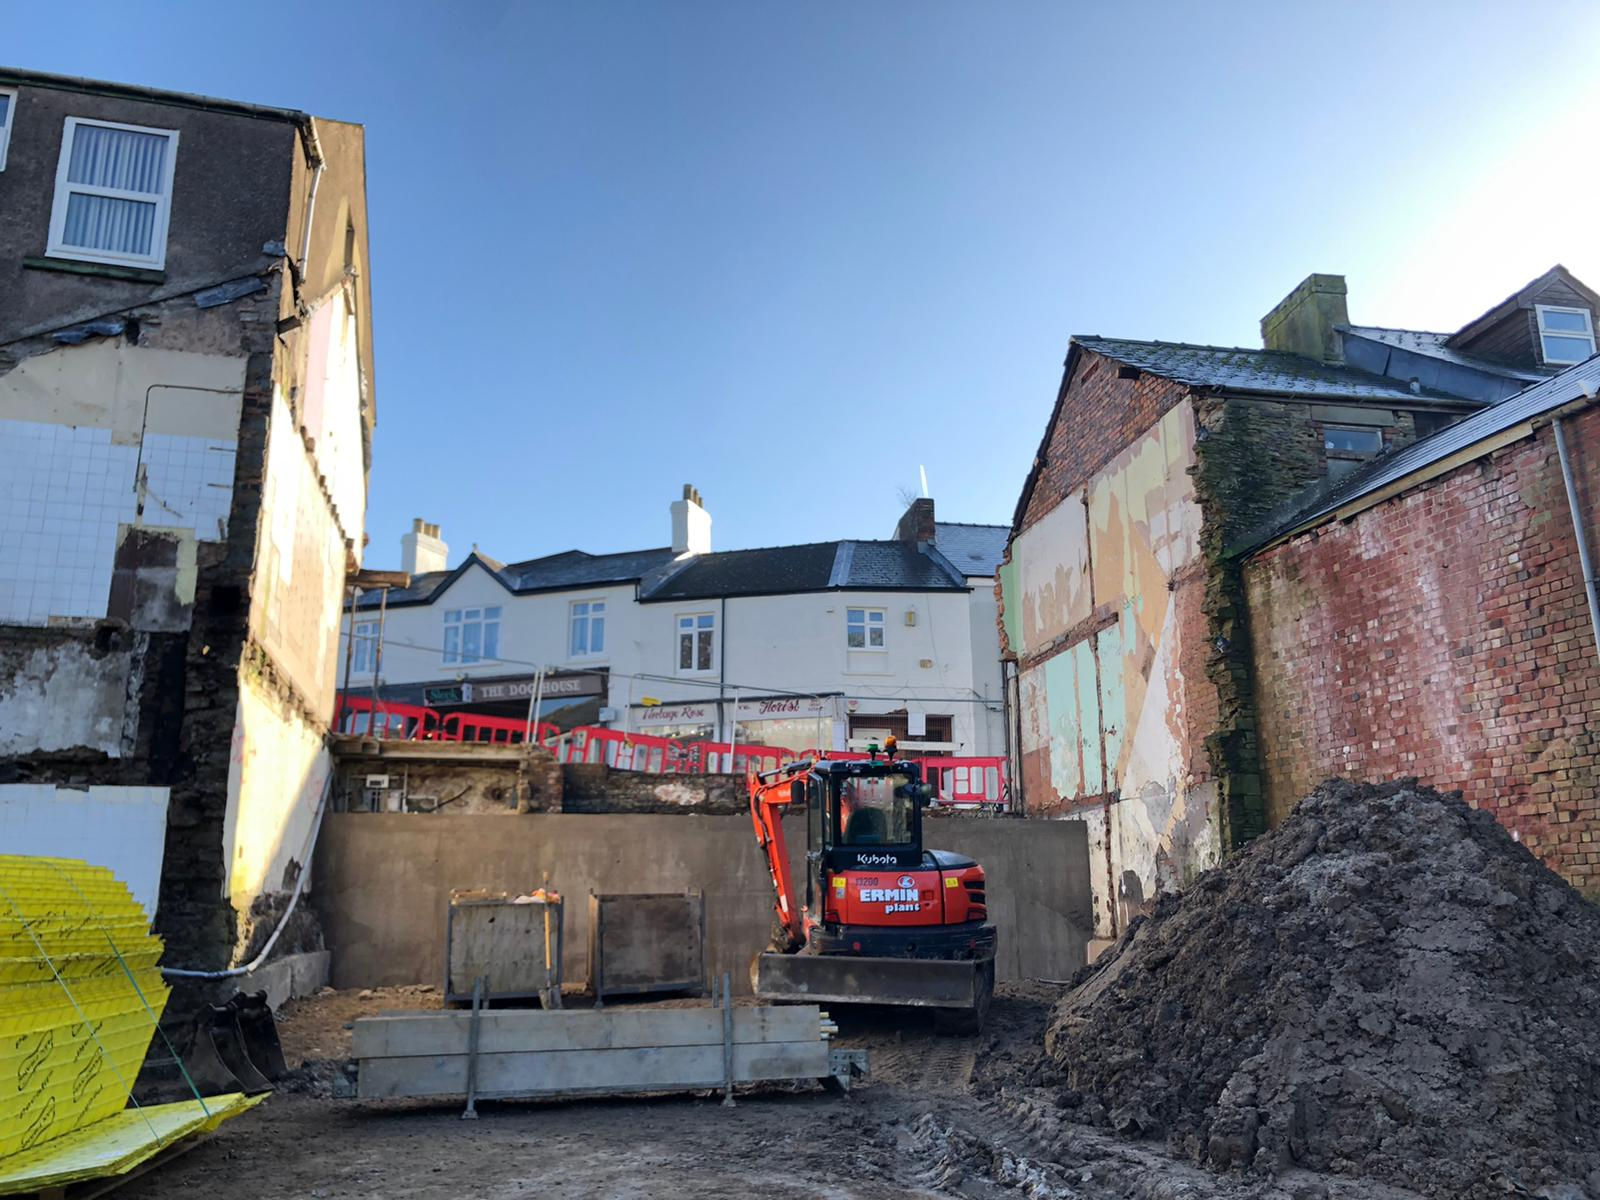 Project site at Cinderford for a residential and commercial development.